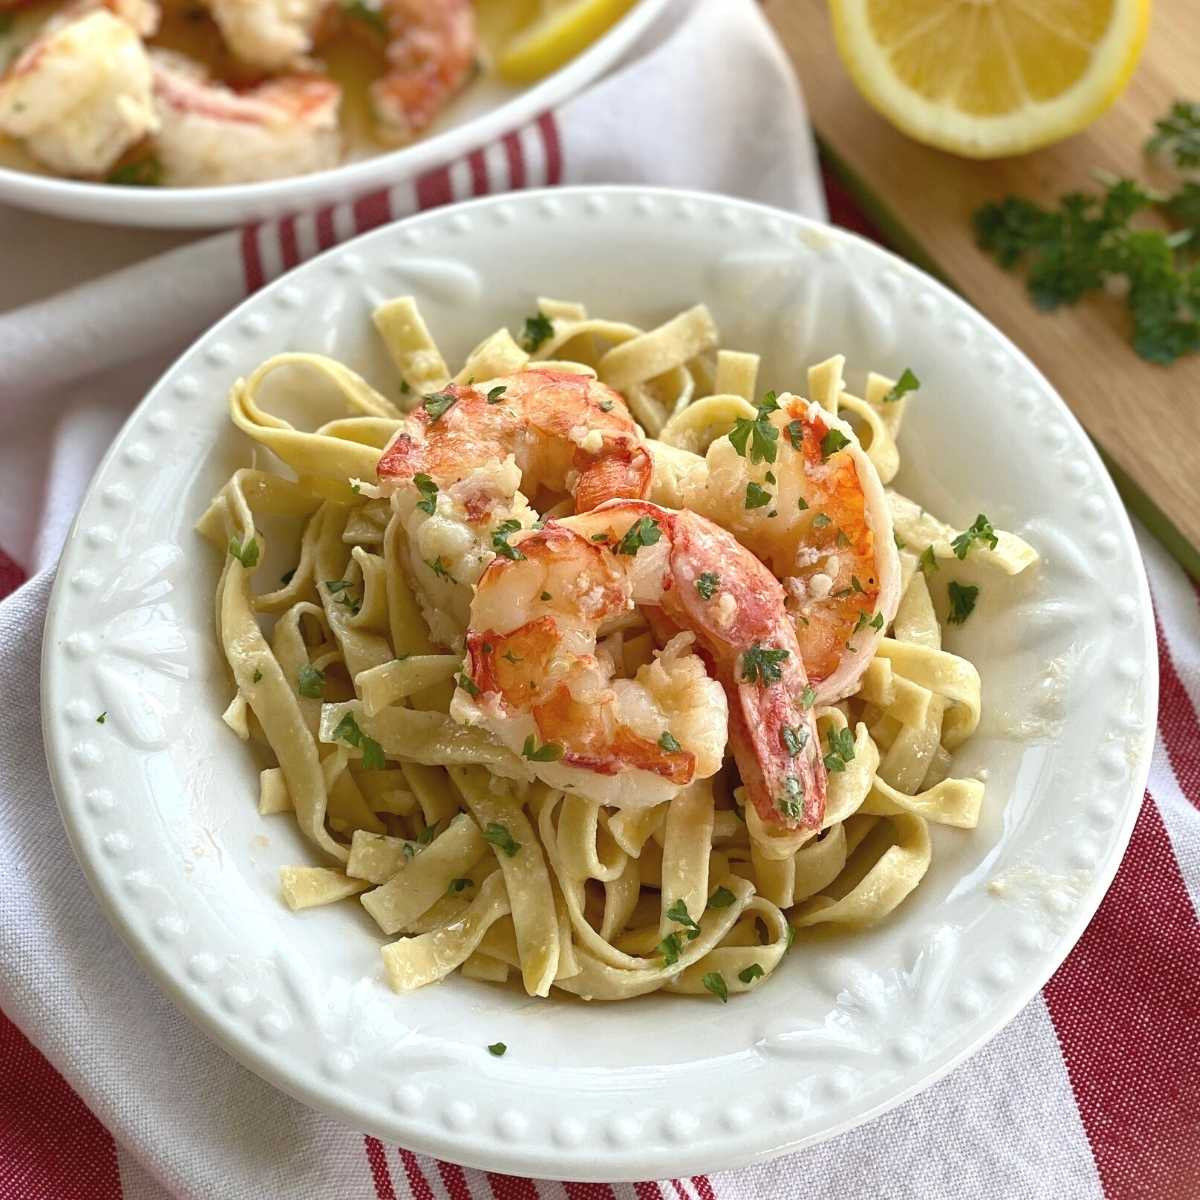 Red Argentine Shrimp in a scampi sauce on top of a bowl of pasta.